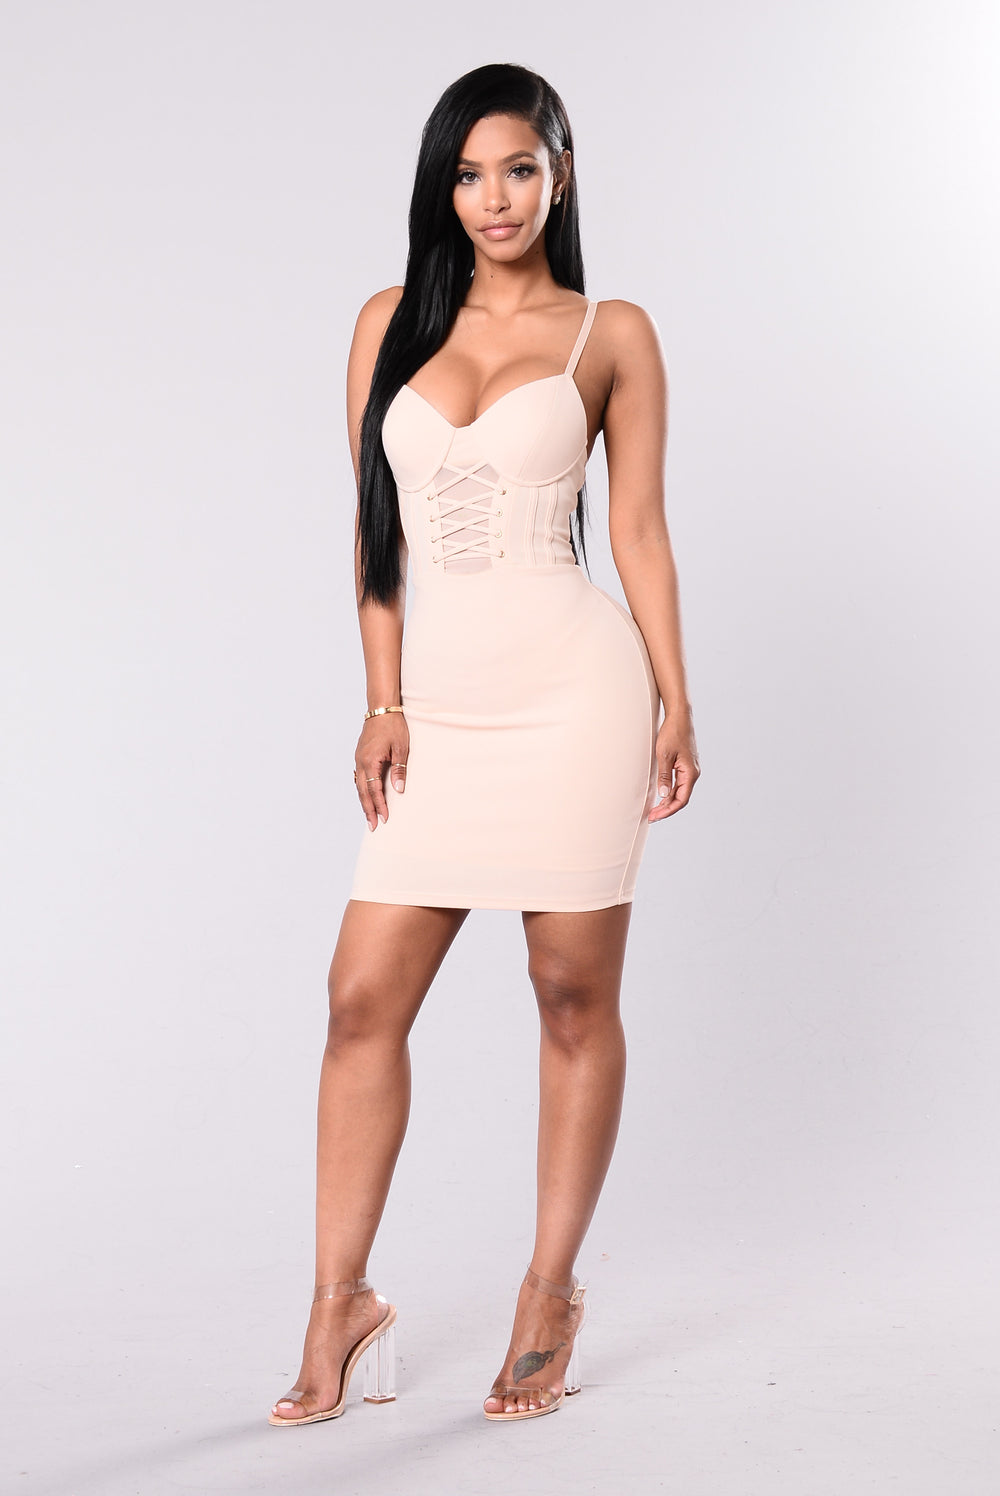 Feeling Sexy Dress - Nude-8807